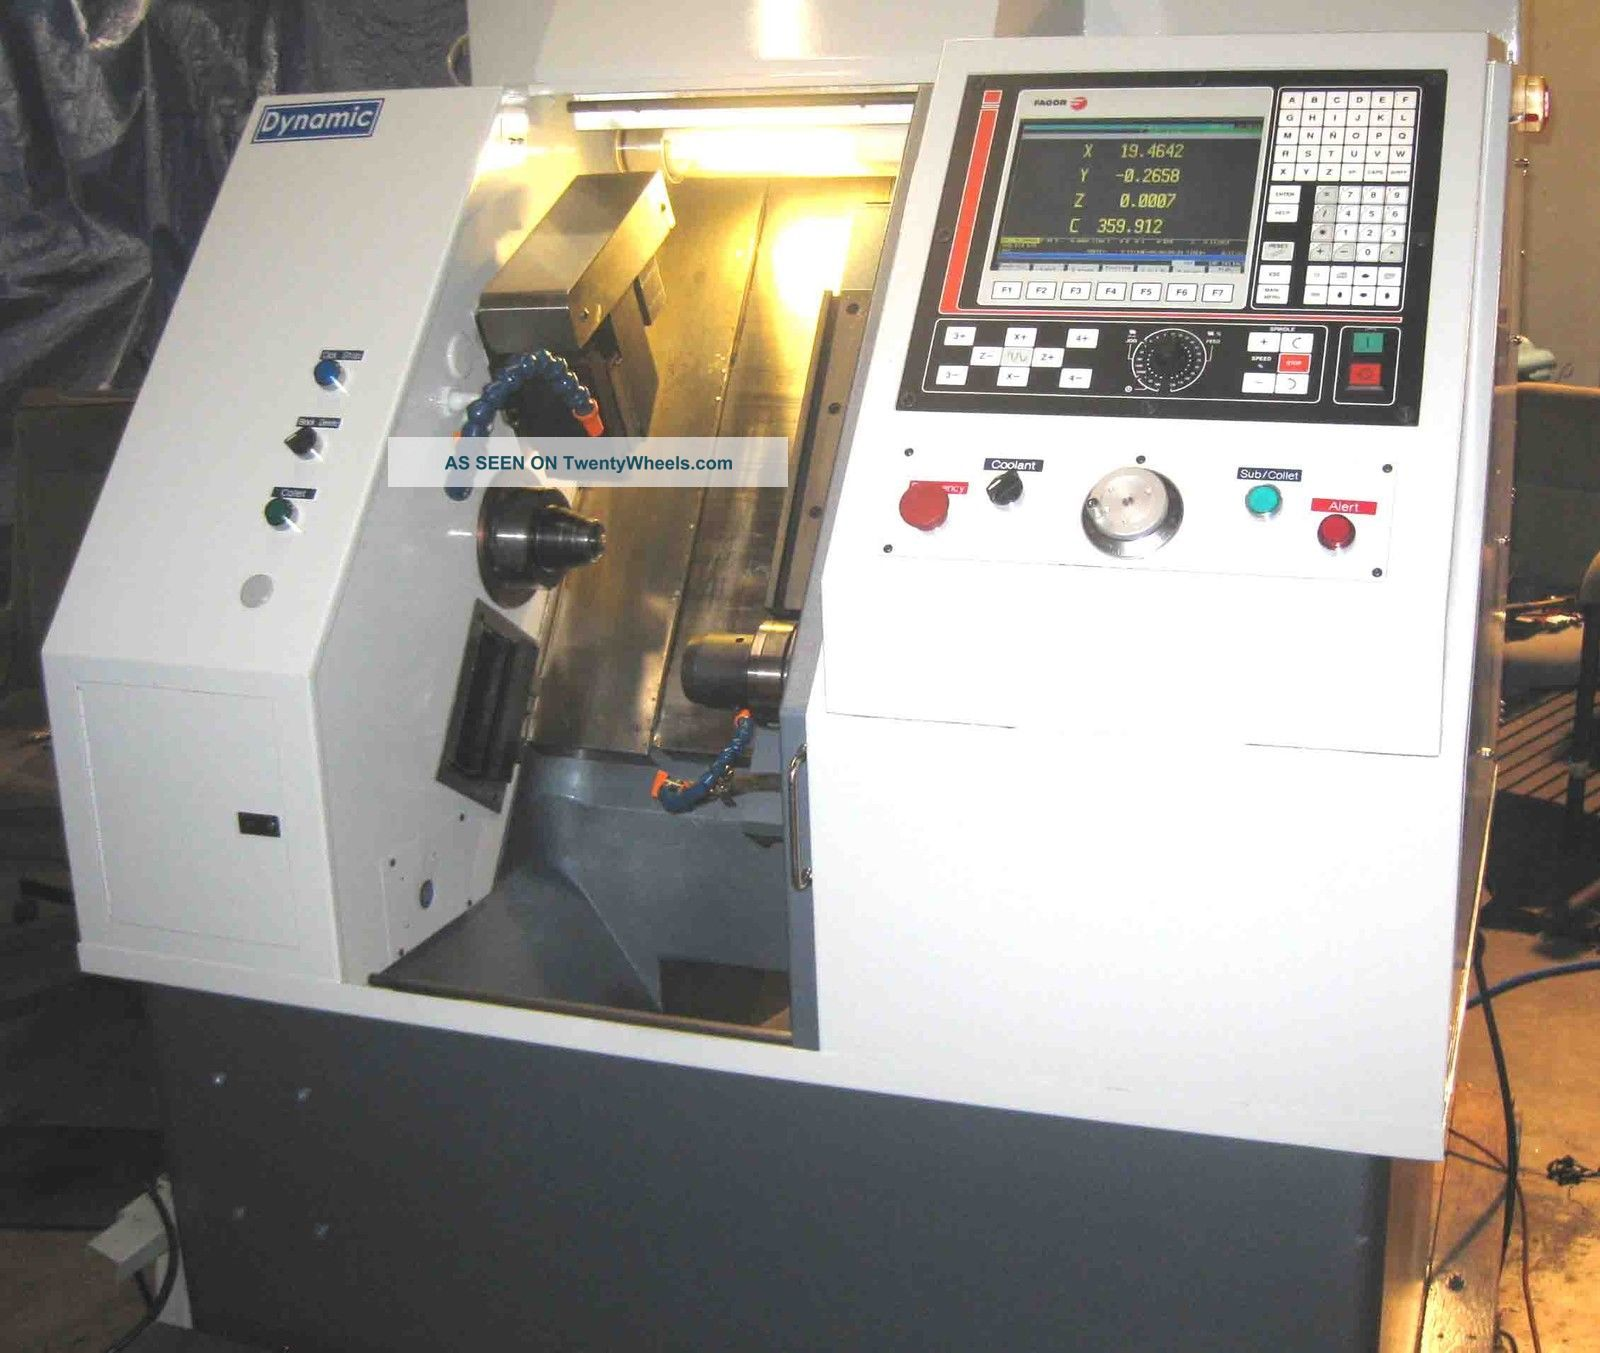 Gts - Fx Cnc With Subspindle - 5c 5c - Full C Axis Main Spindle - Indexing Sub Metalworking Lathes photo